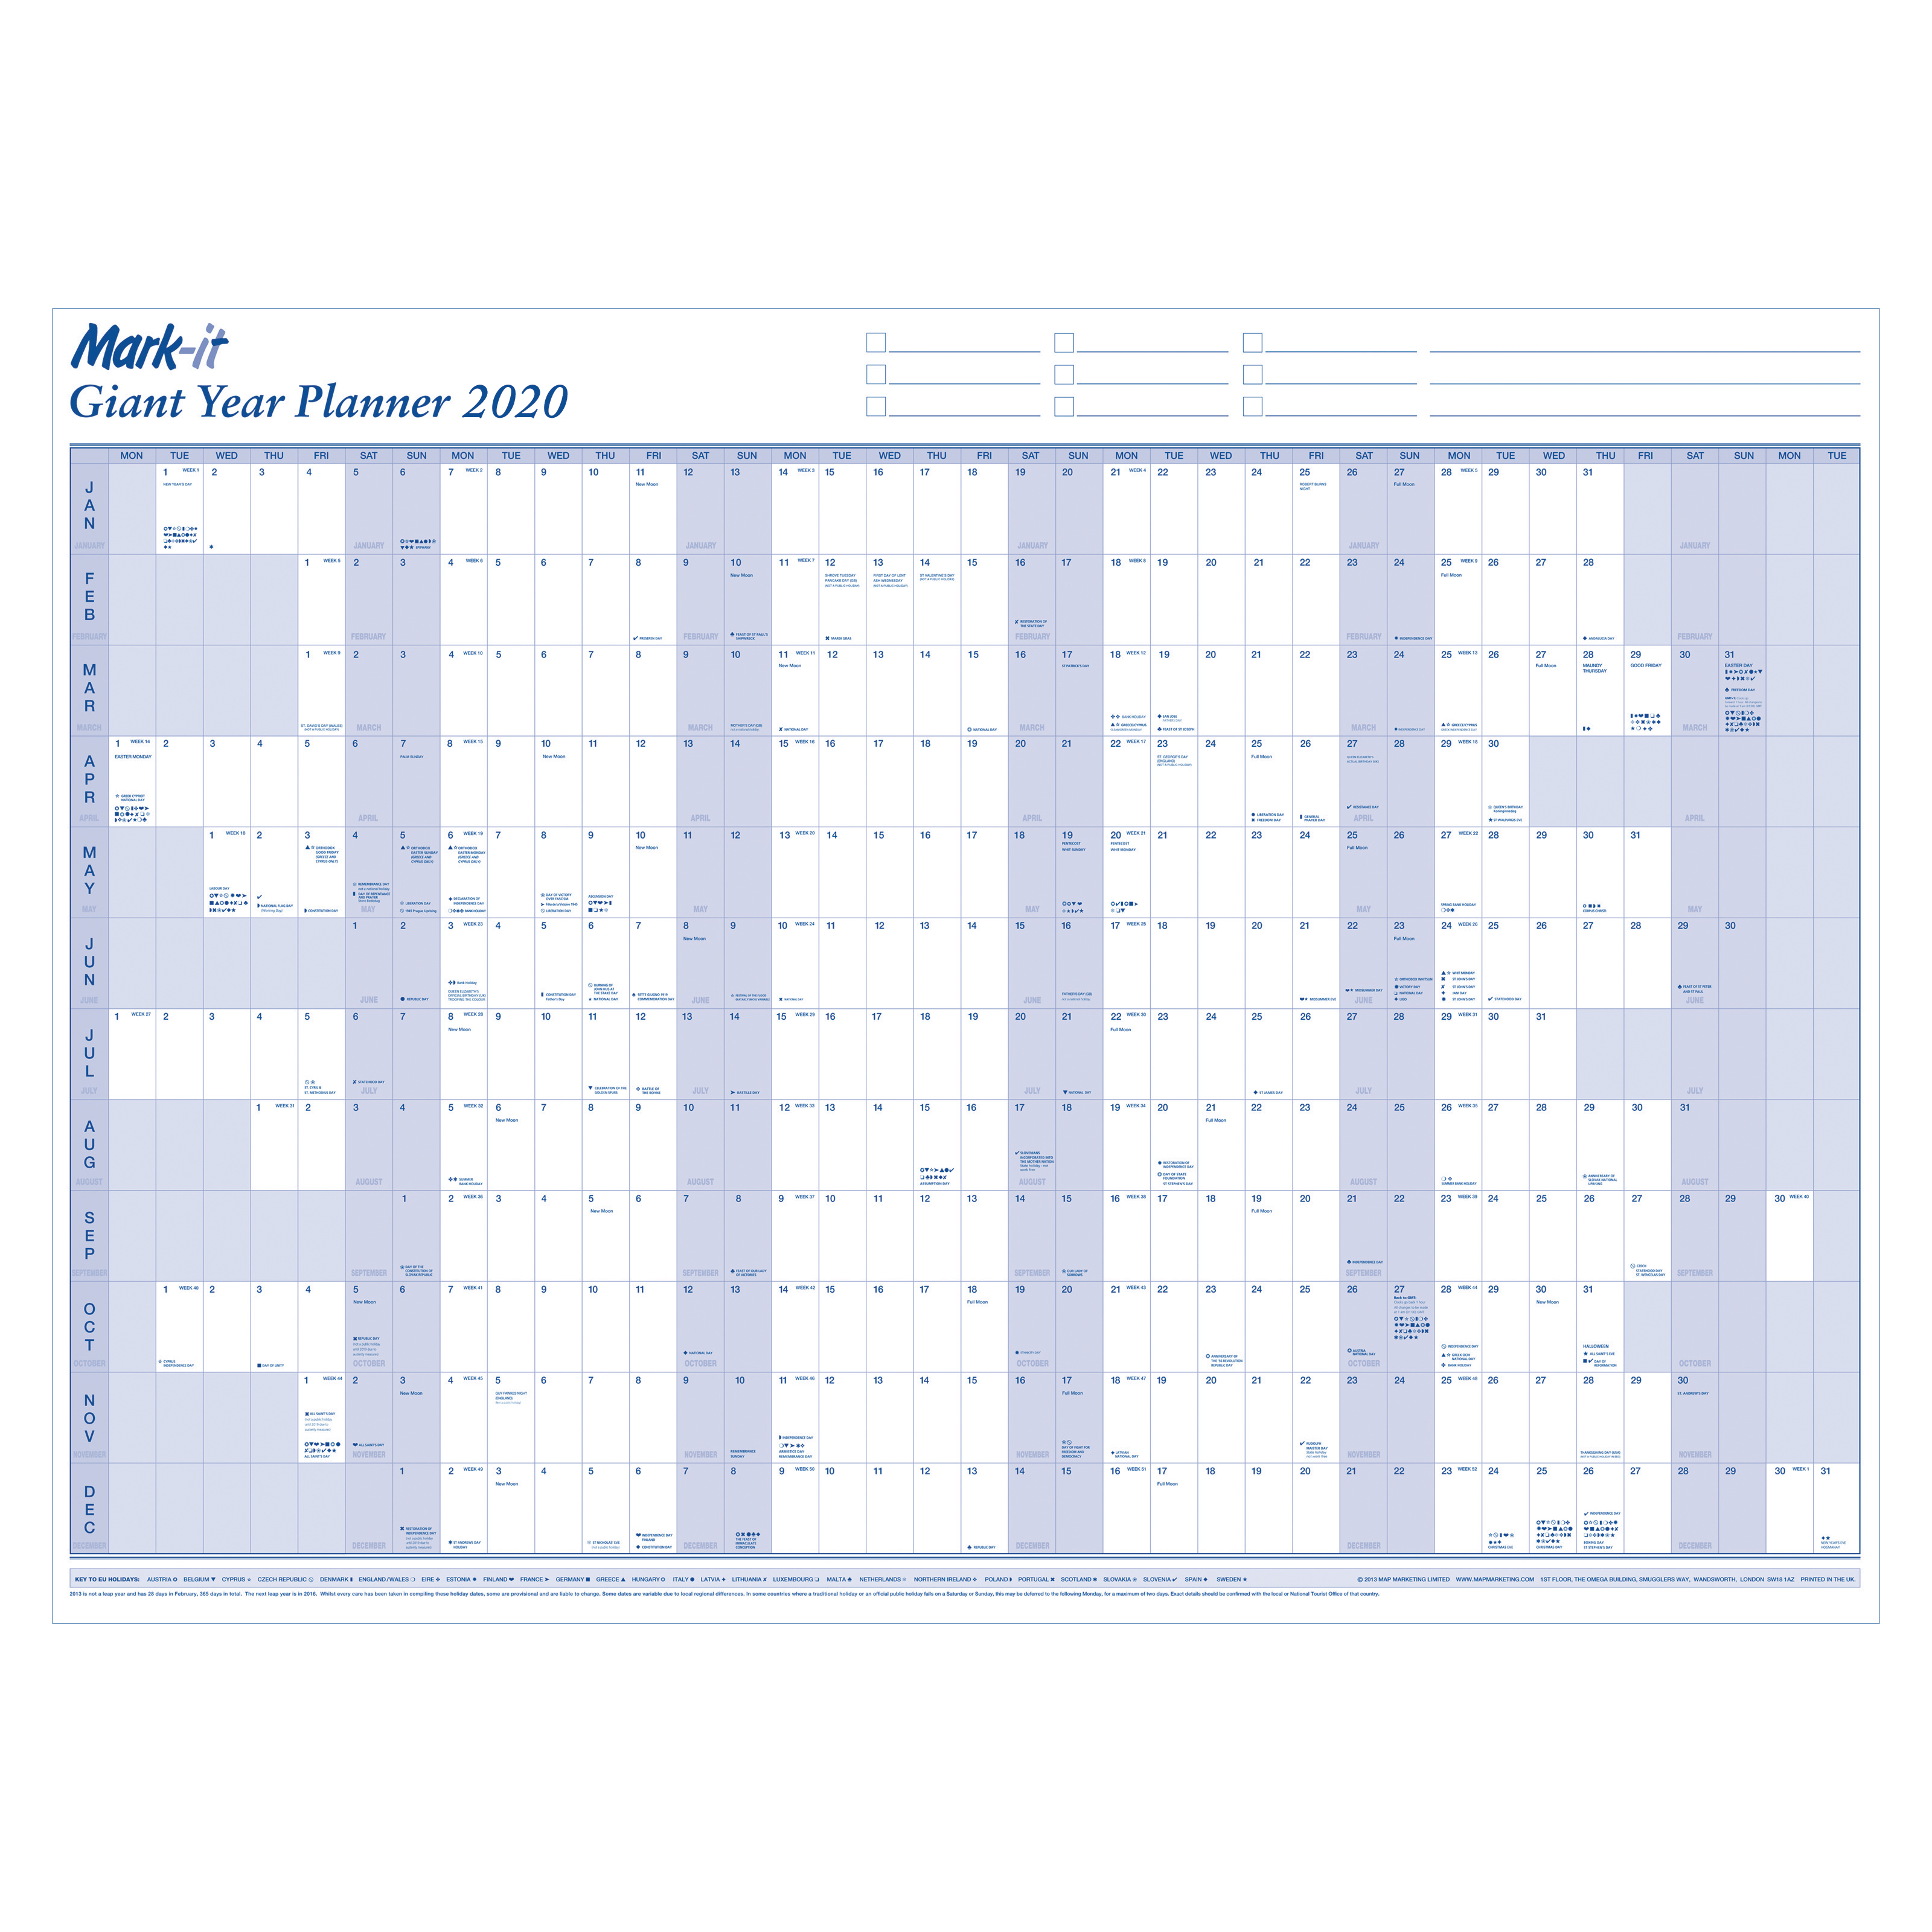 Planners Mark-it 2020 Giant Year Planner Unmounted Landscape with Accessory Kit 1165x820mm Blue/White Ref 20YP